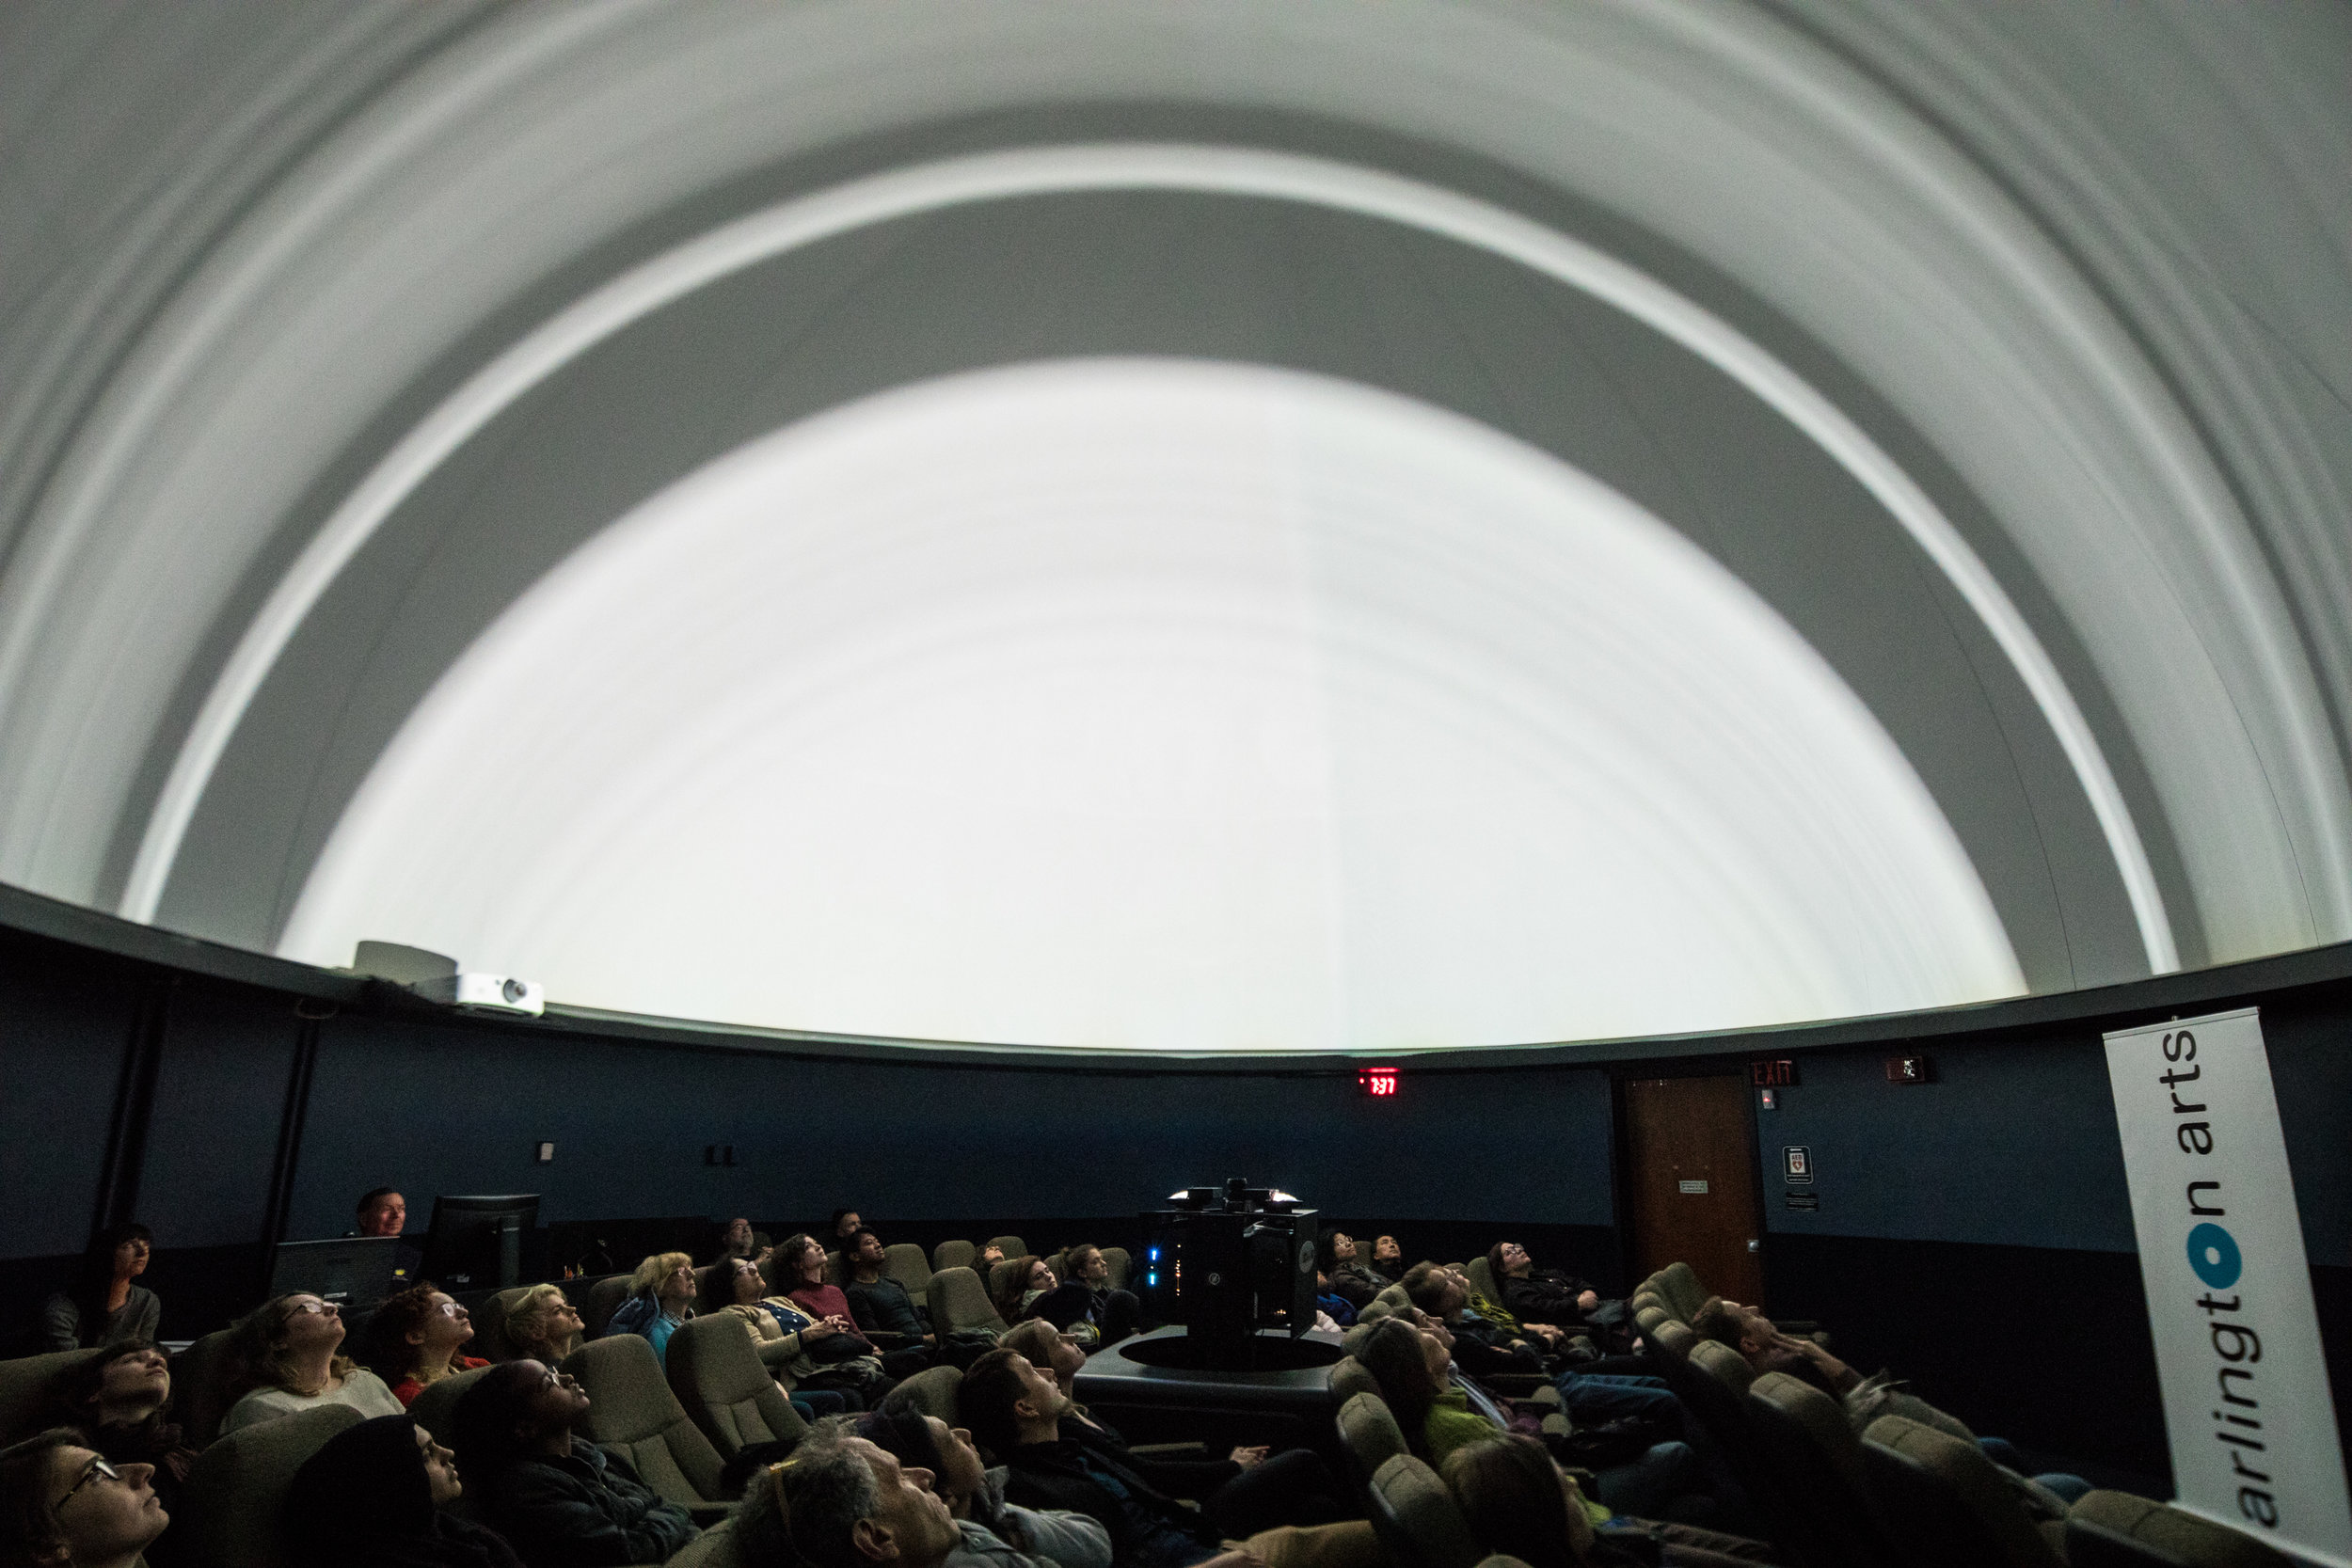 ym_aca_full_dome_projection_111717-6152.jpg